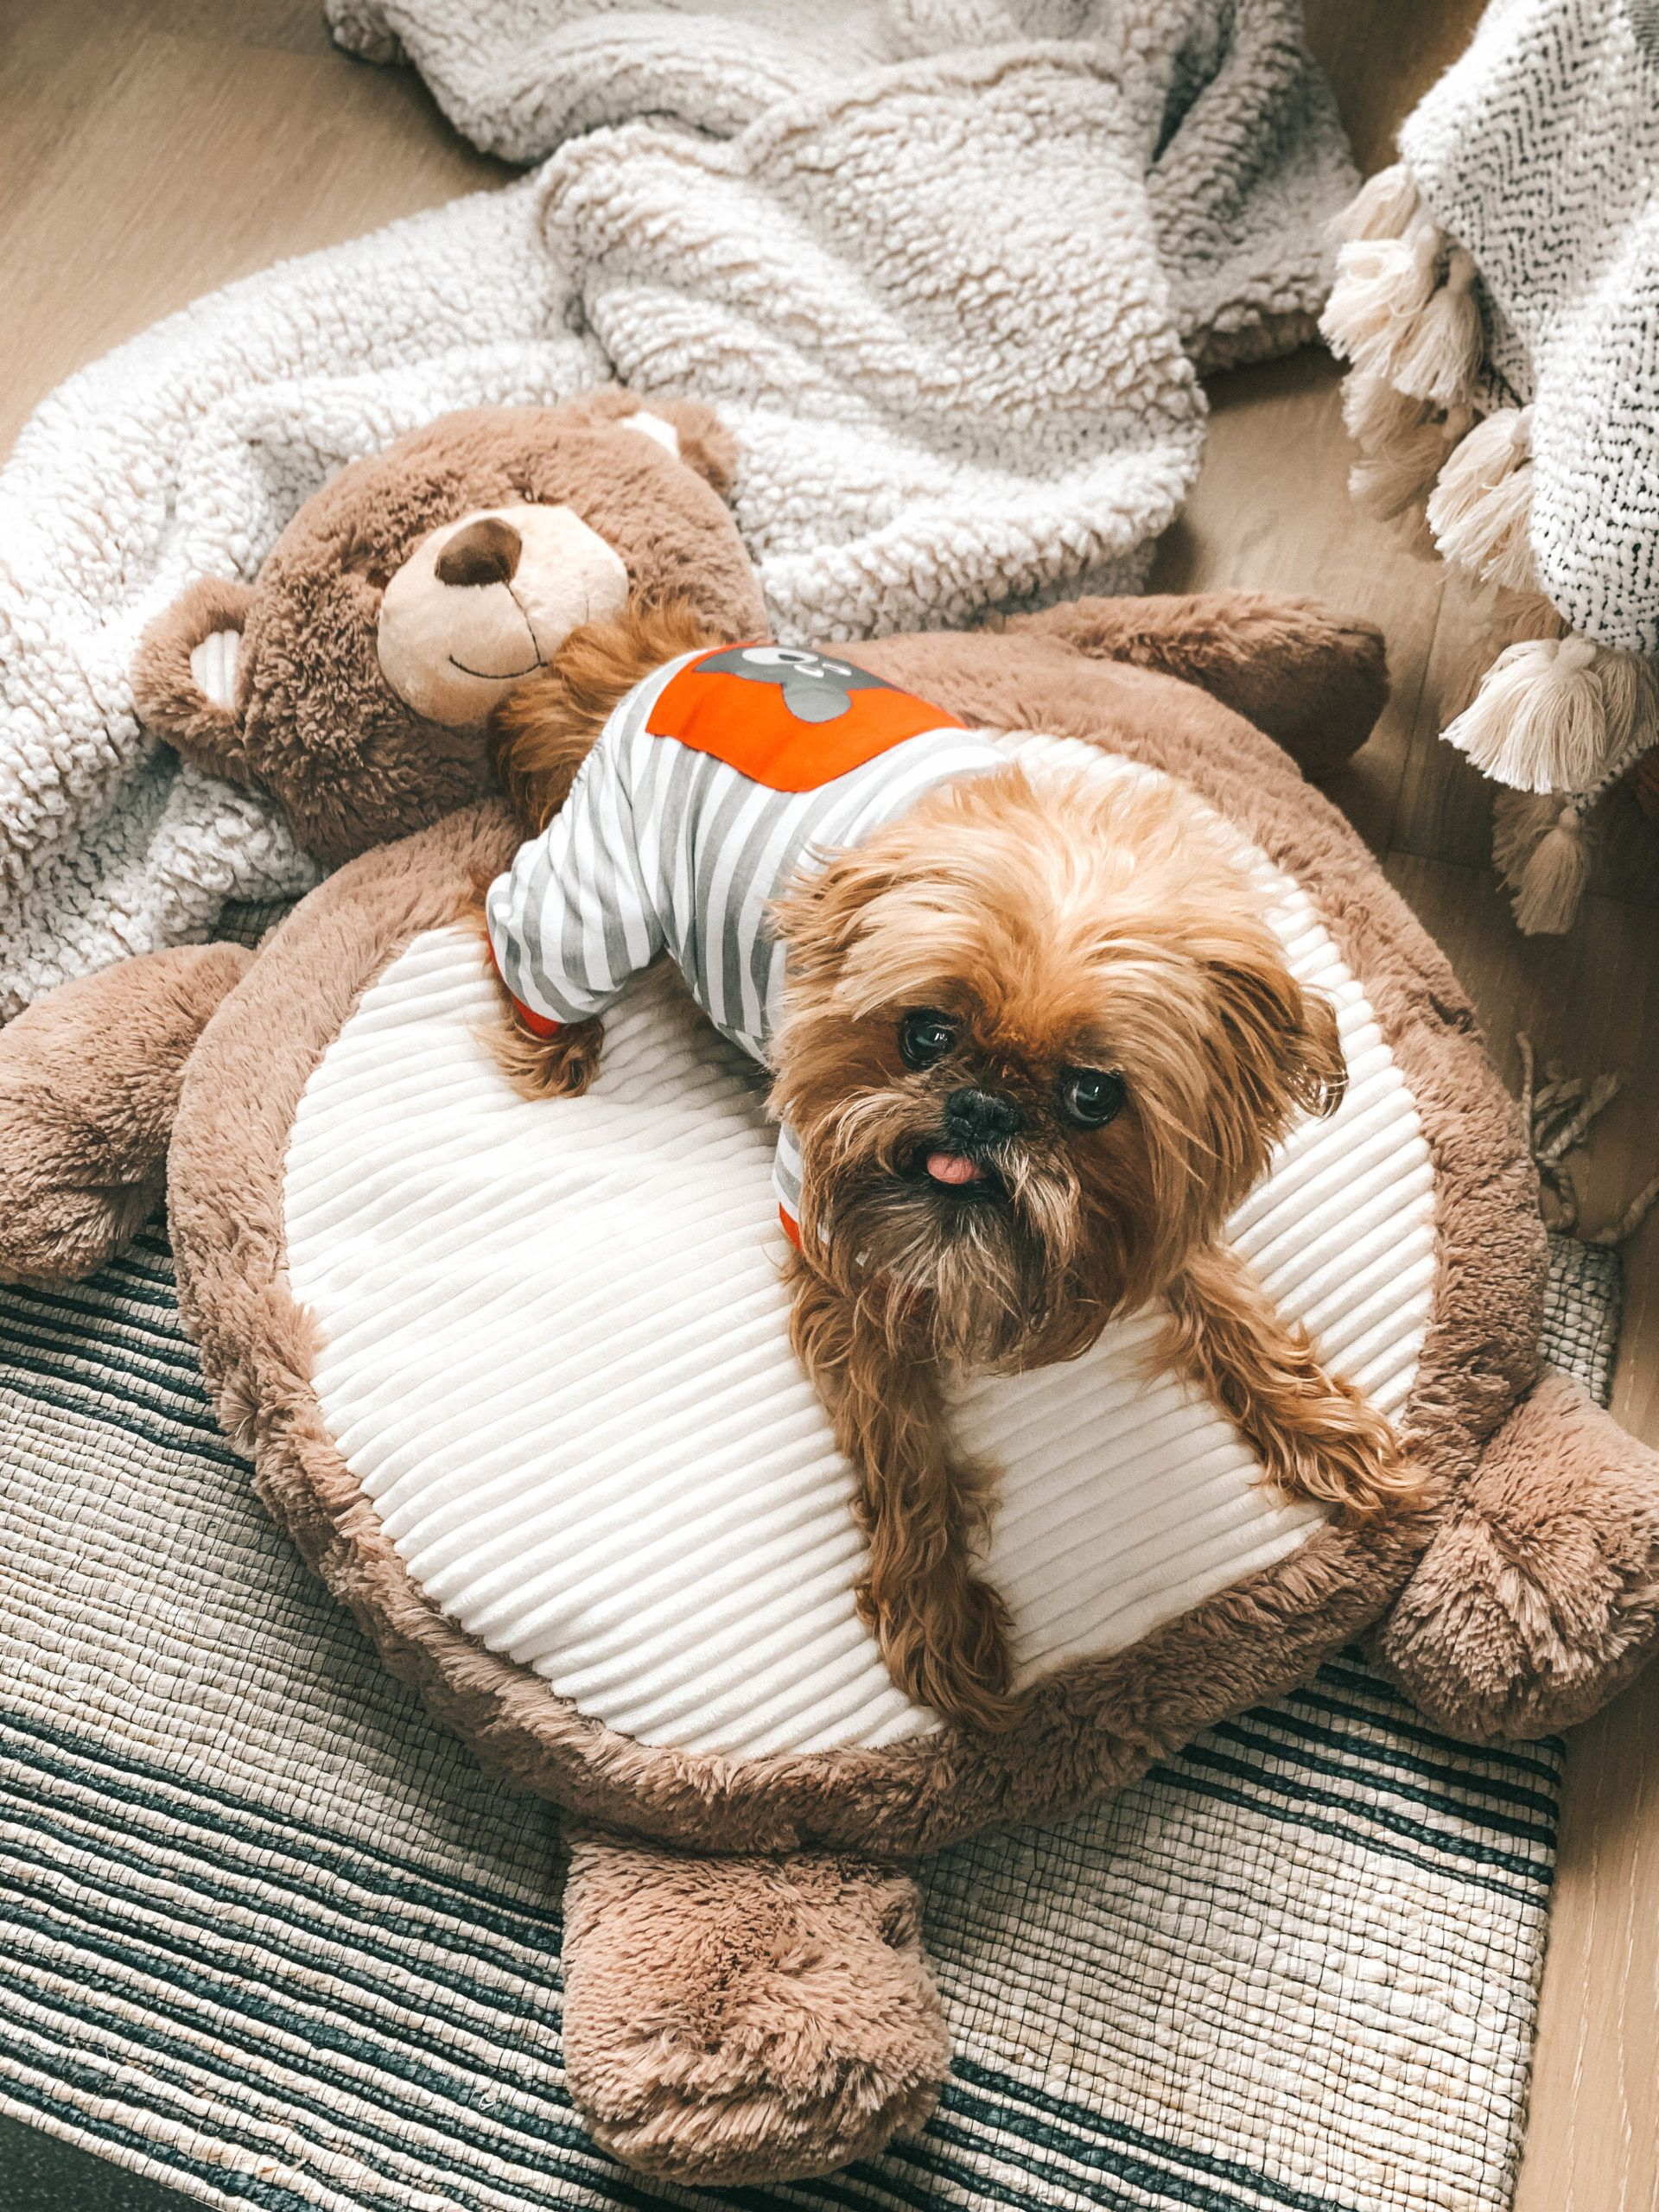 Pamper Your Pet On A Budget In 2020 With Images Bloggers Favorite Your Pet Pet Beds